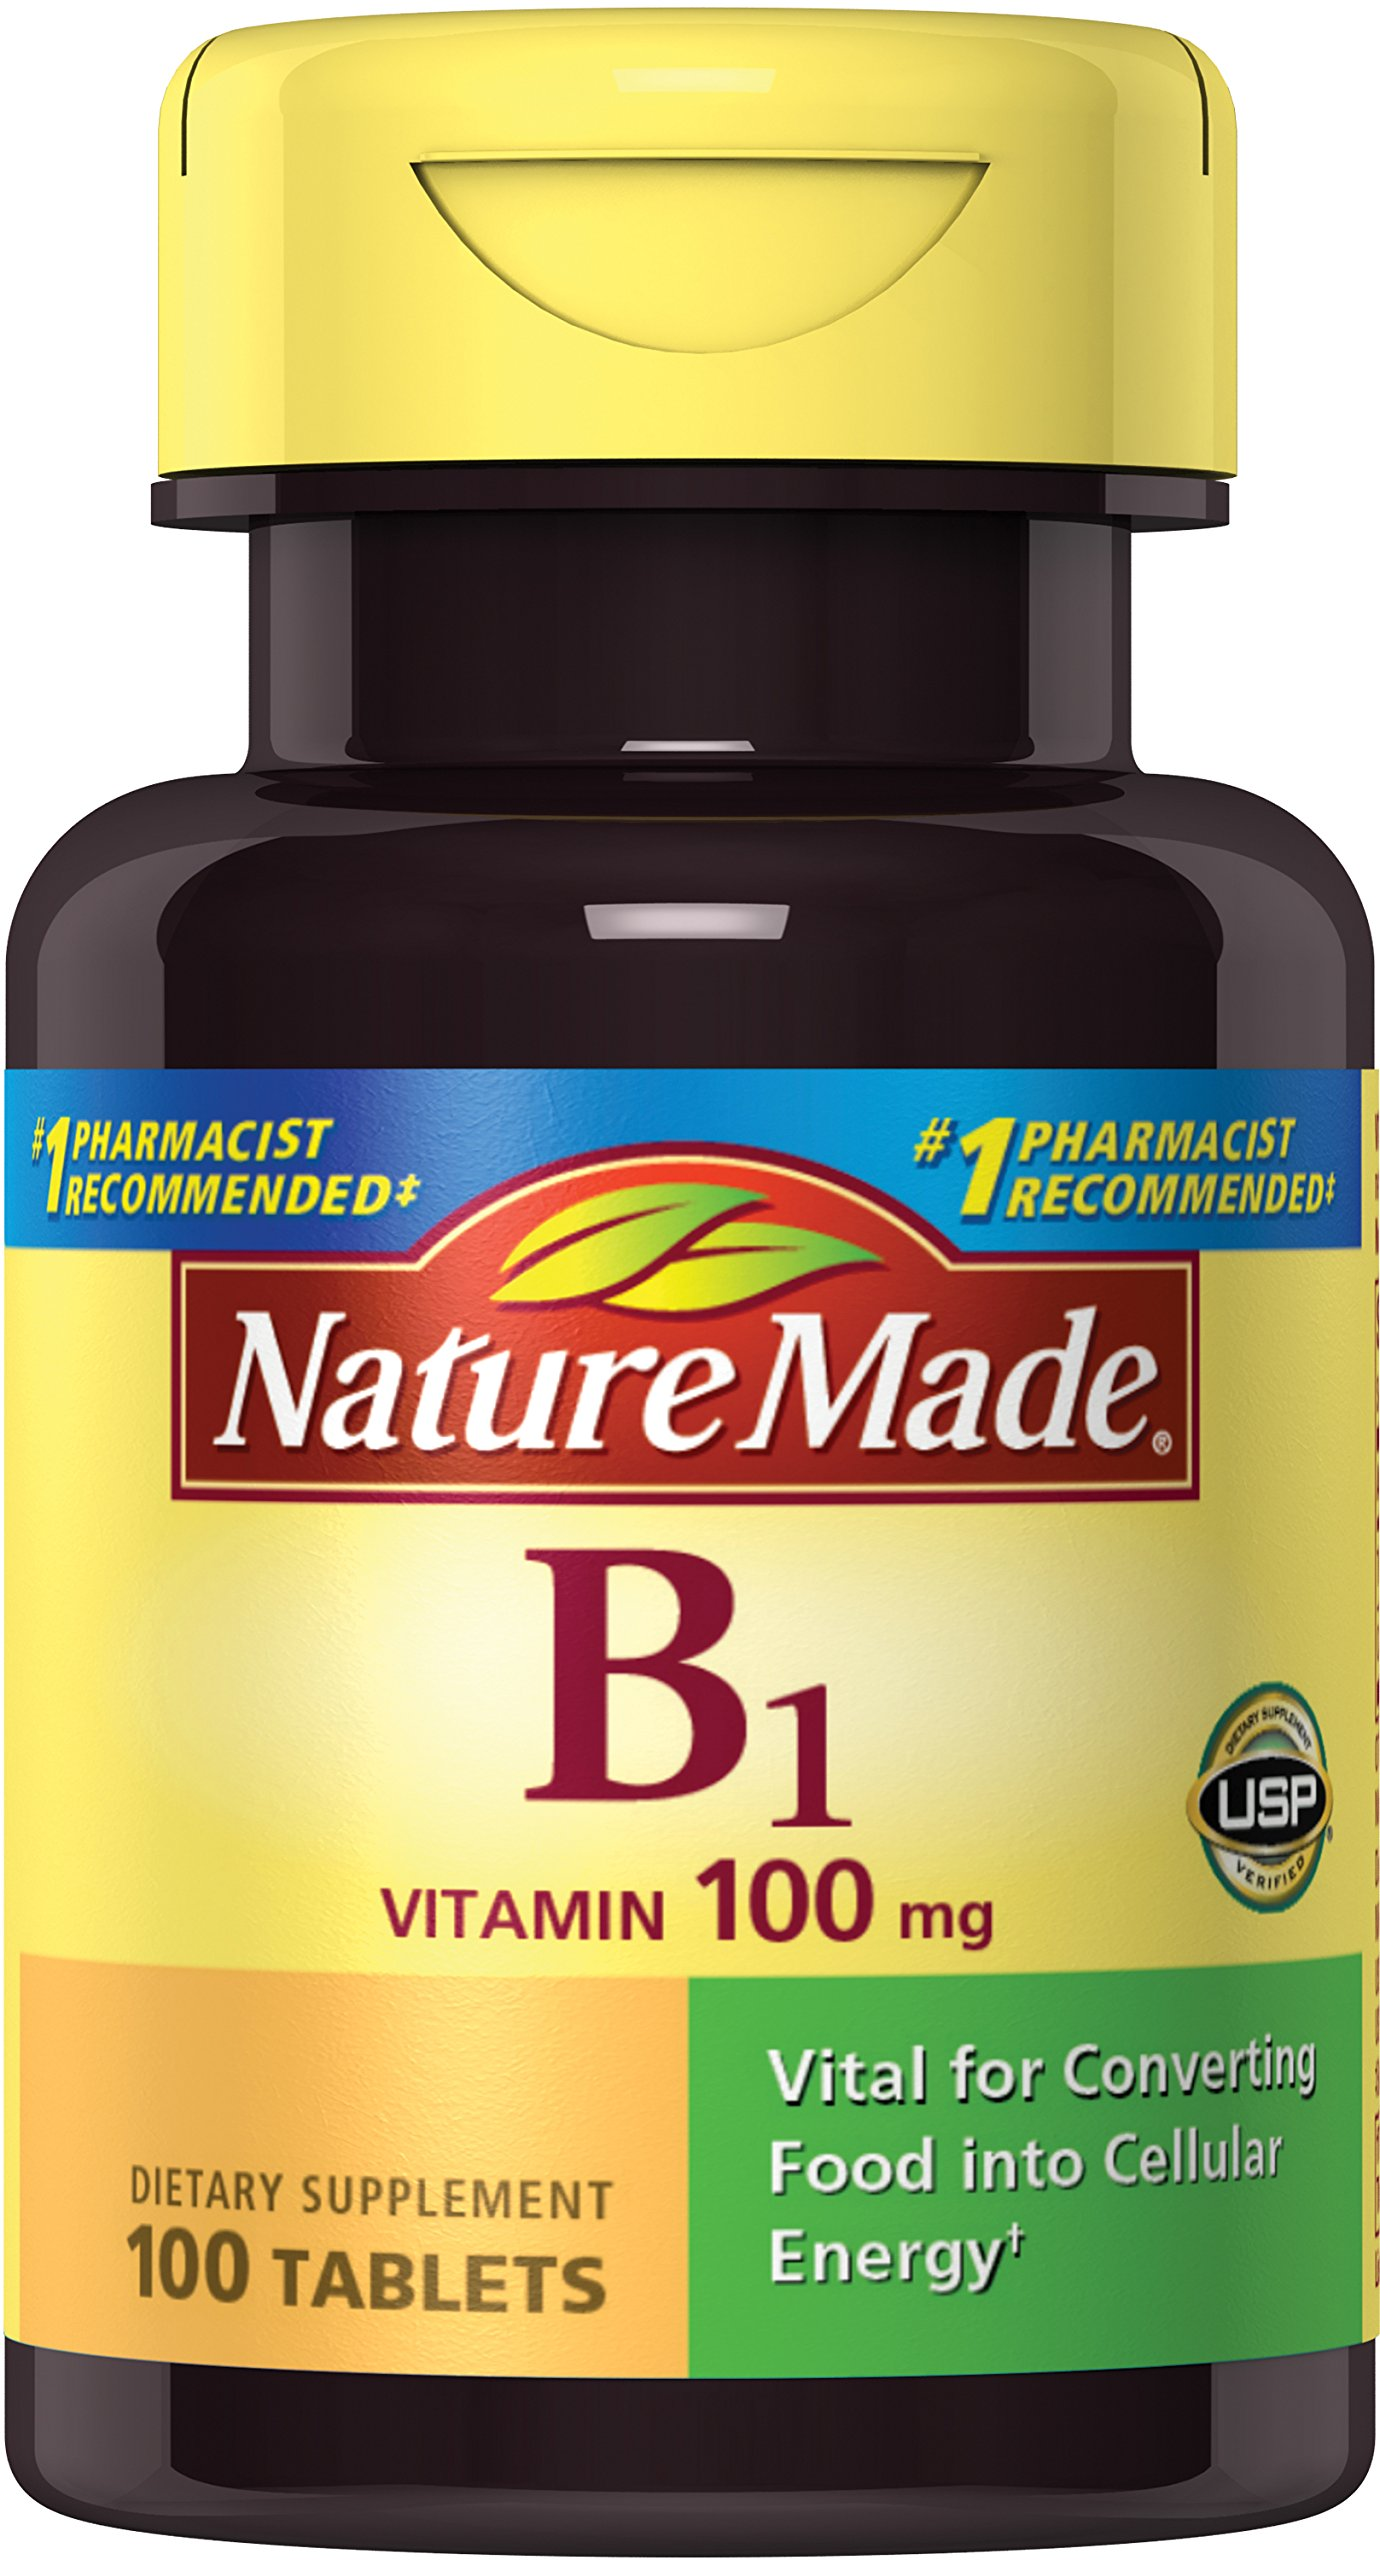 Nature Made Vitamin B1, 100mg, 100 Tablets (Pack of 6) by Nature Made